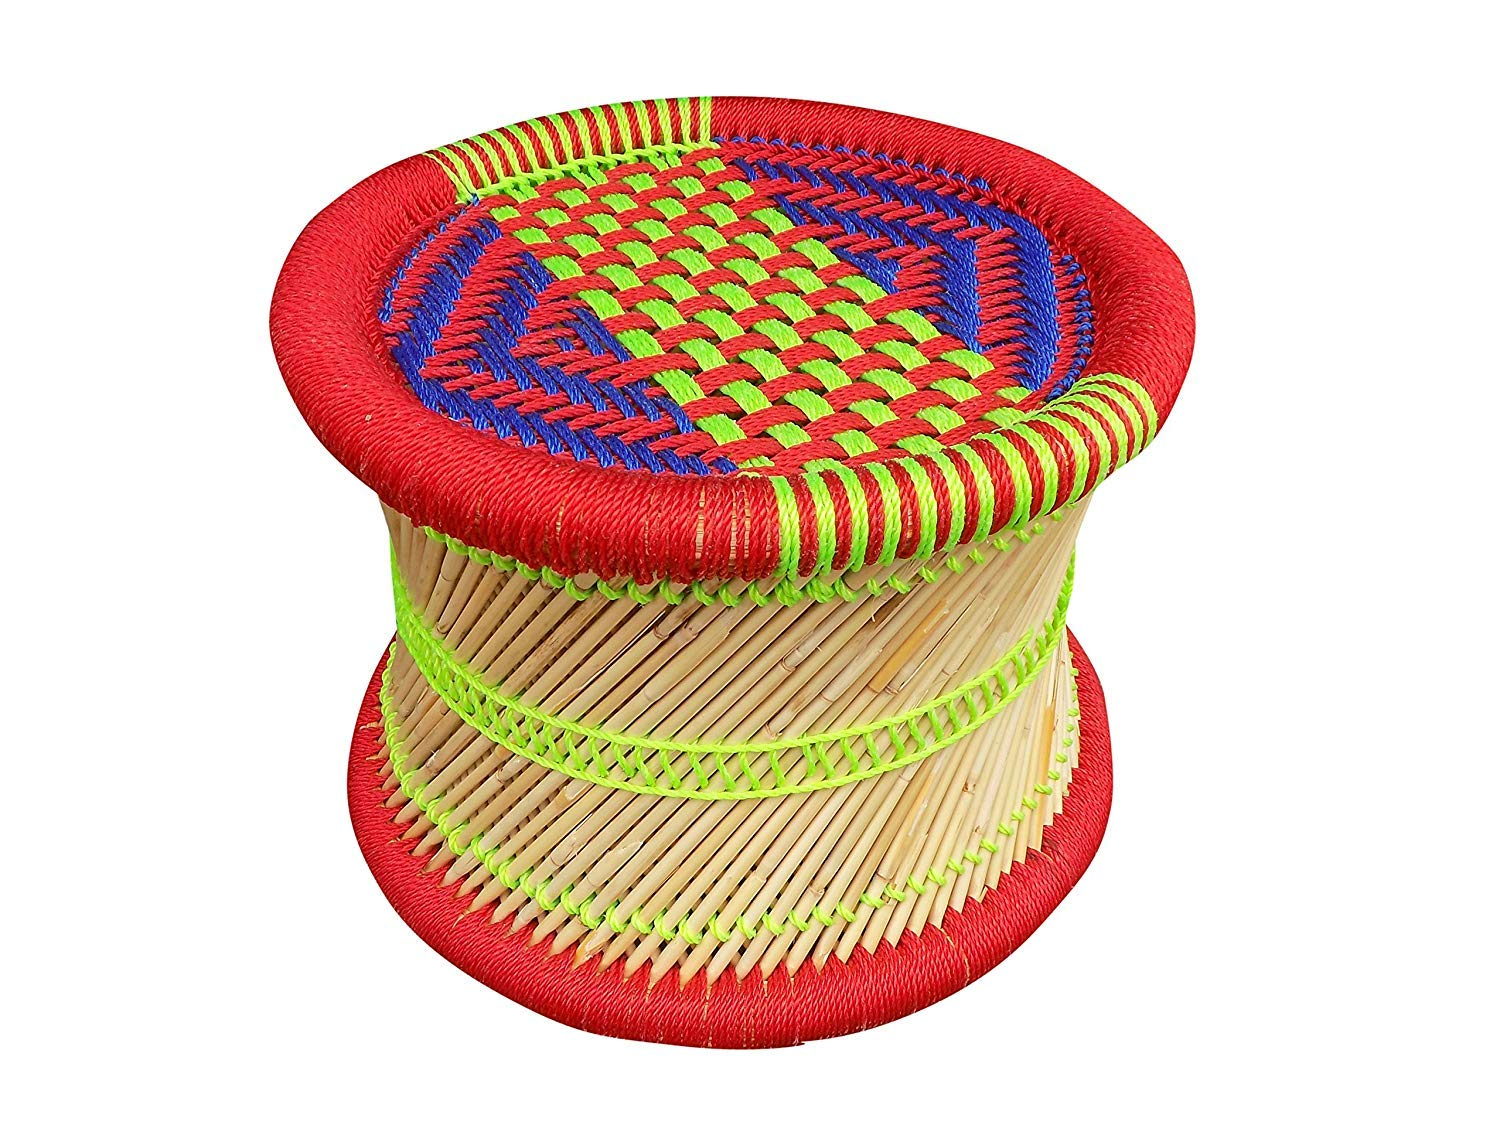 Shivansh Mudda Or Stool Shivansh Mudda Or Garden Stool Handicraft Cane Wood Bar Muddi In Multi Colored Size 10 Inch Buy Online In Bahamas At Bahamas Desertcart Com Productid 173687396